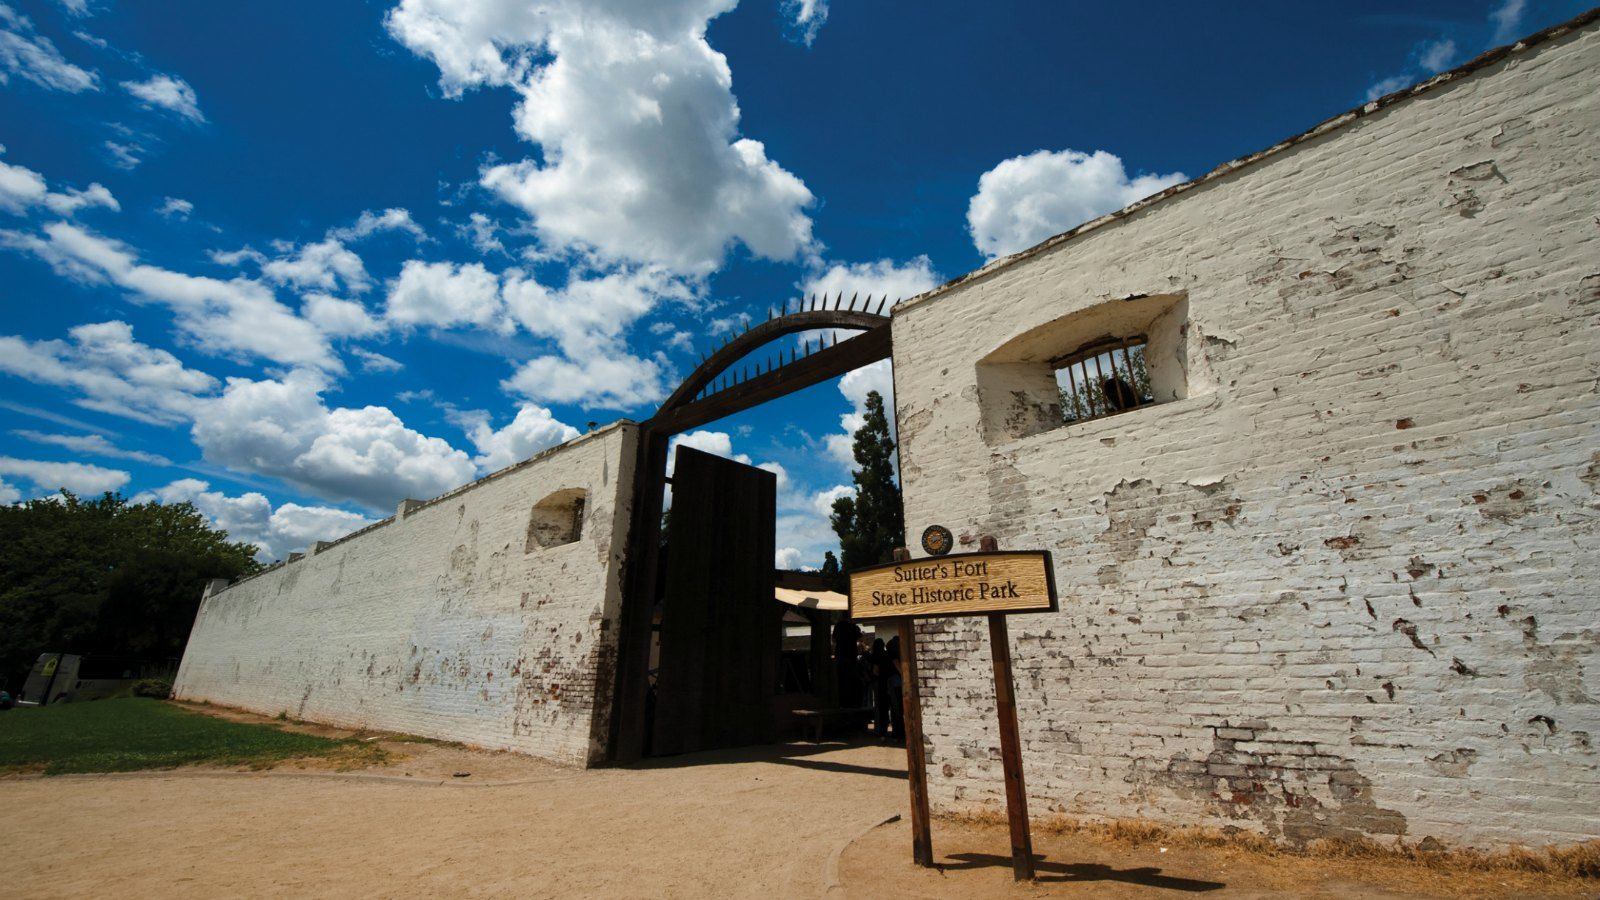 Things to Do in Sacramento - Sutter's Fort State Historic Park